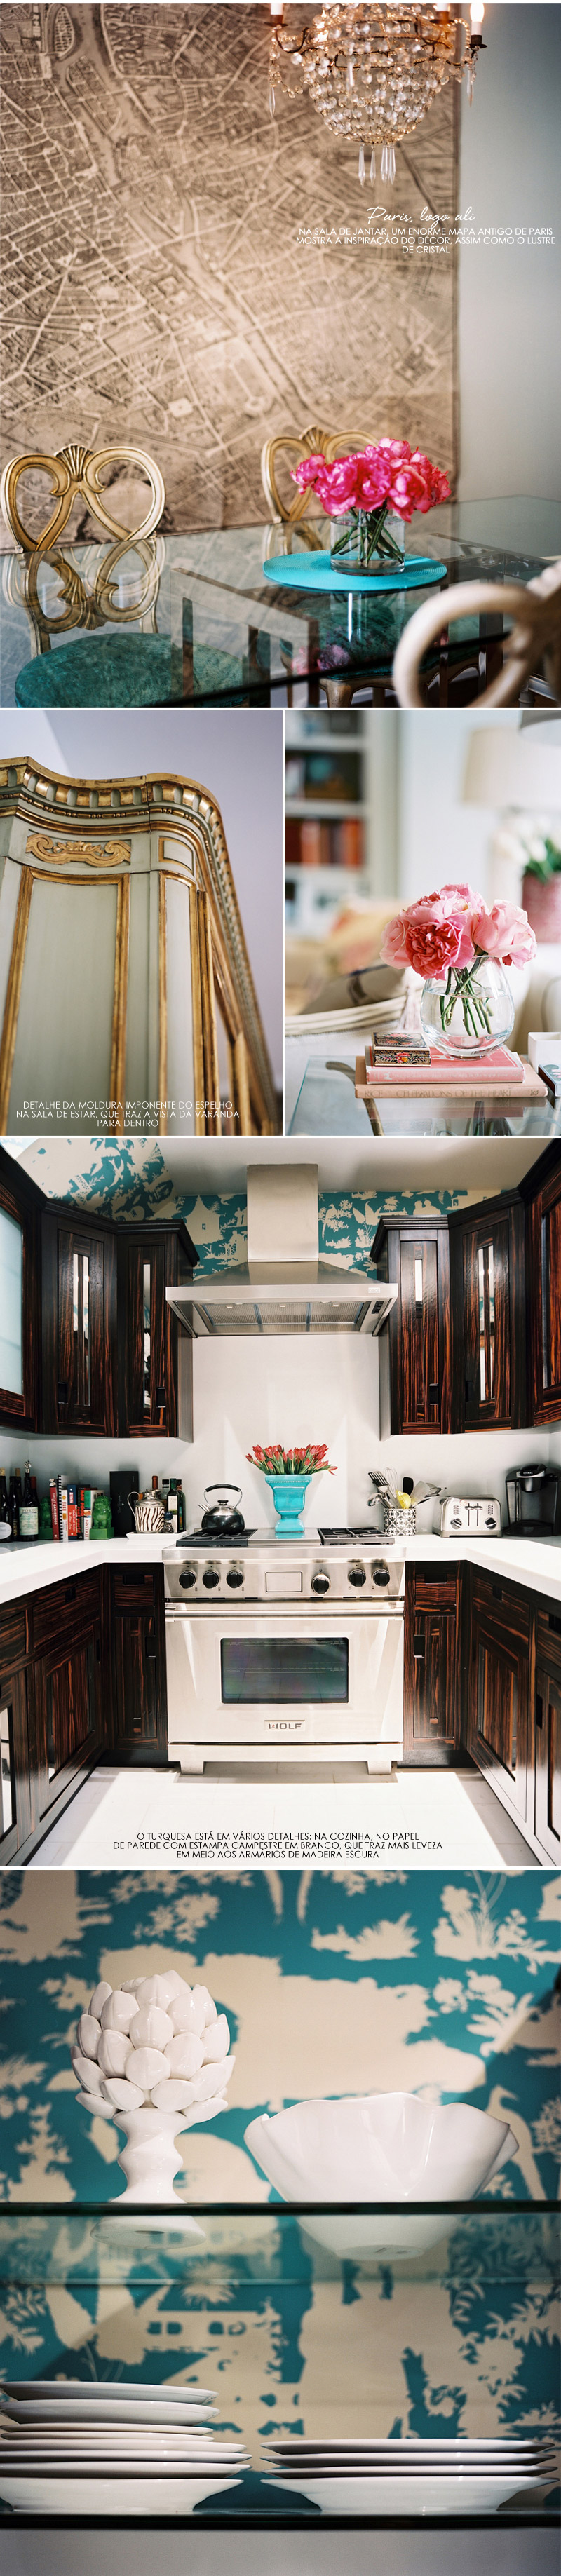 living-gazette-barbara-resende-decor-tour-apto-ny-paris-inspired-kitchen-dinning-area